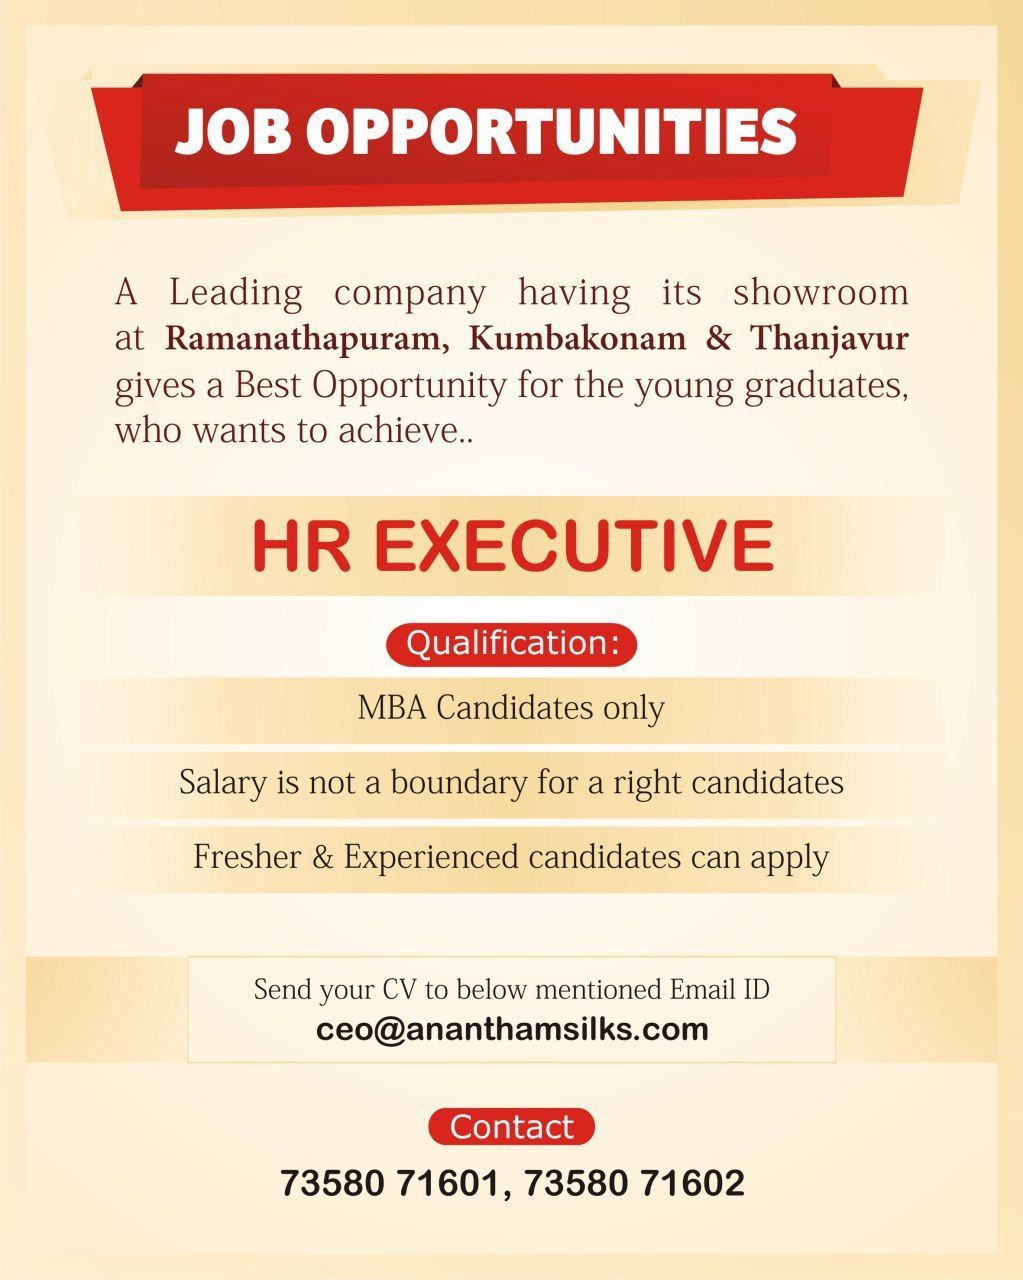 Job Opportunities Anantham Silks Wanted Hr Executive Job